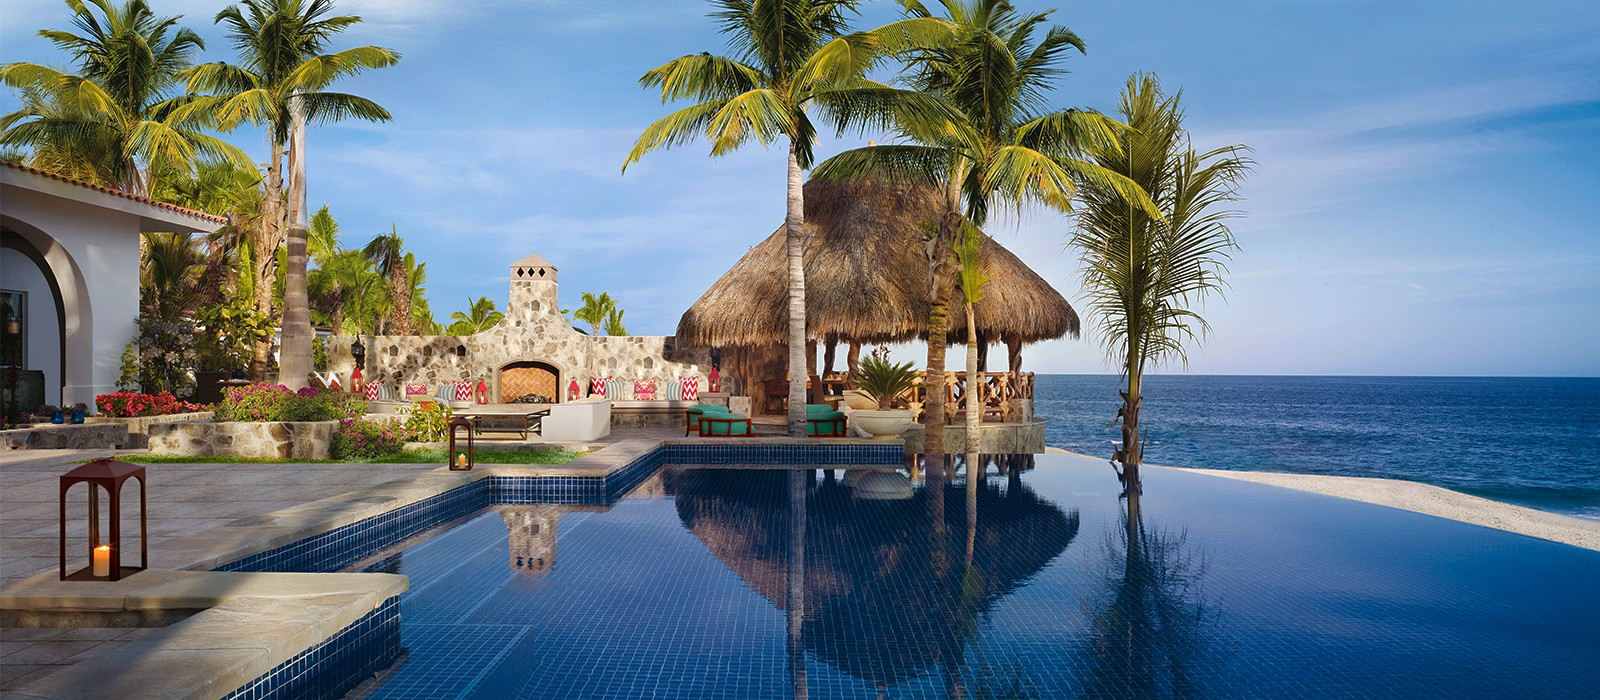 header - One and Only Palmilla - Luxury Mexico Holidays